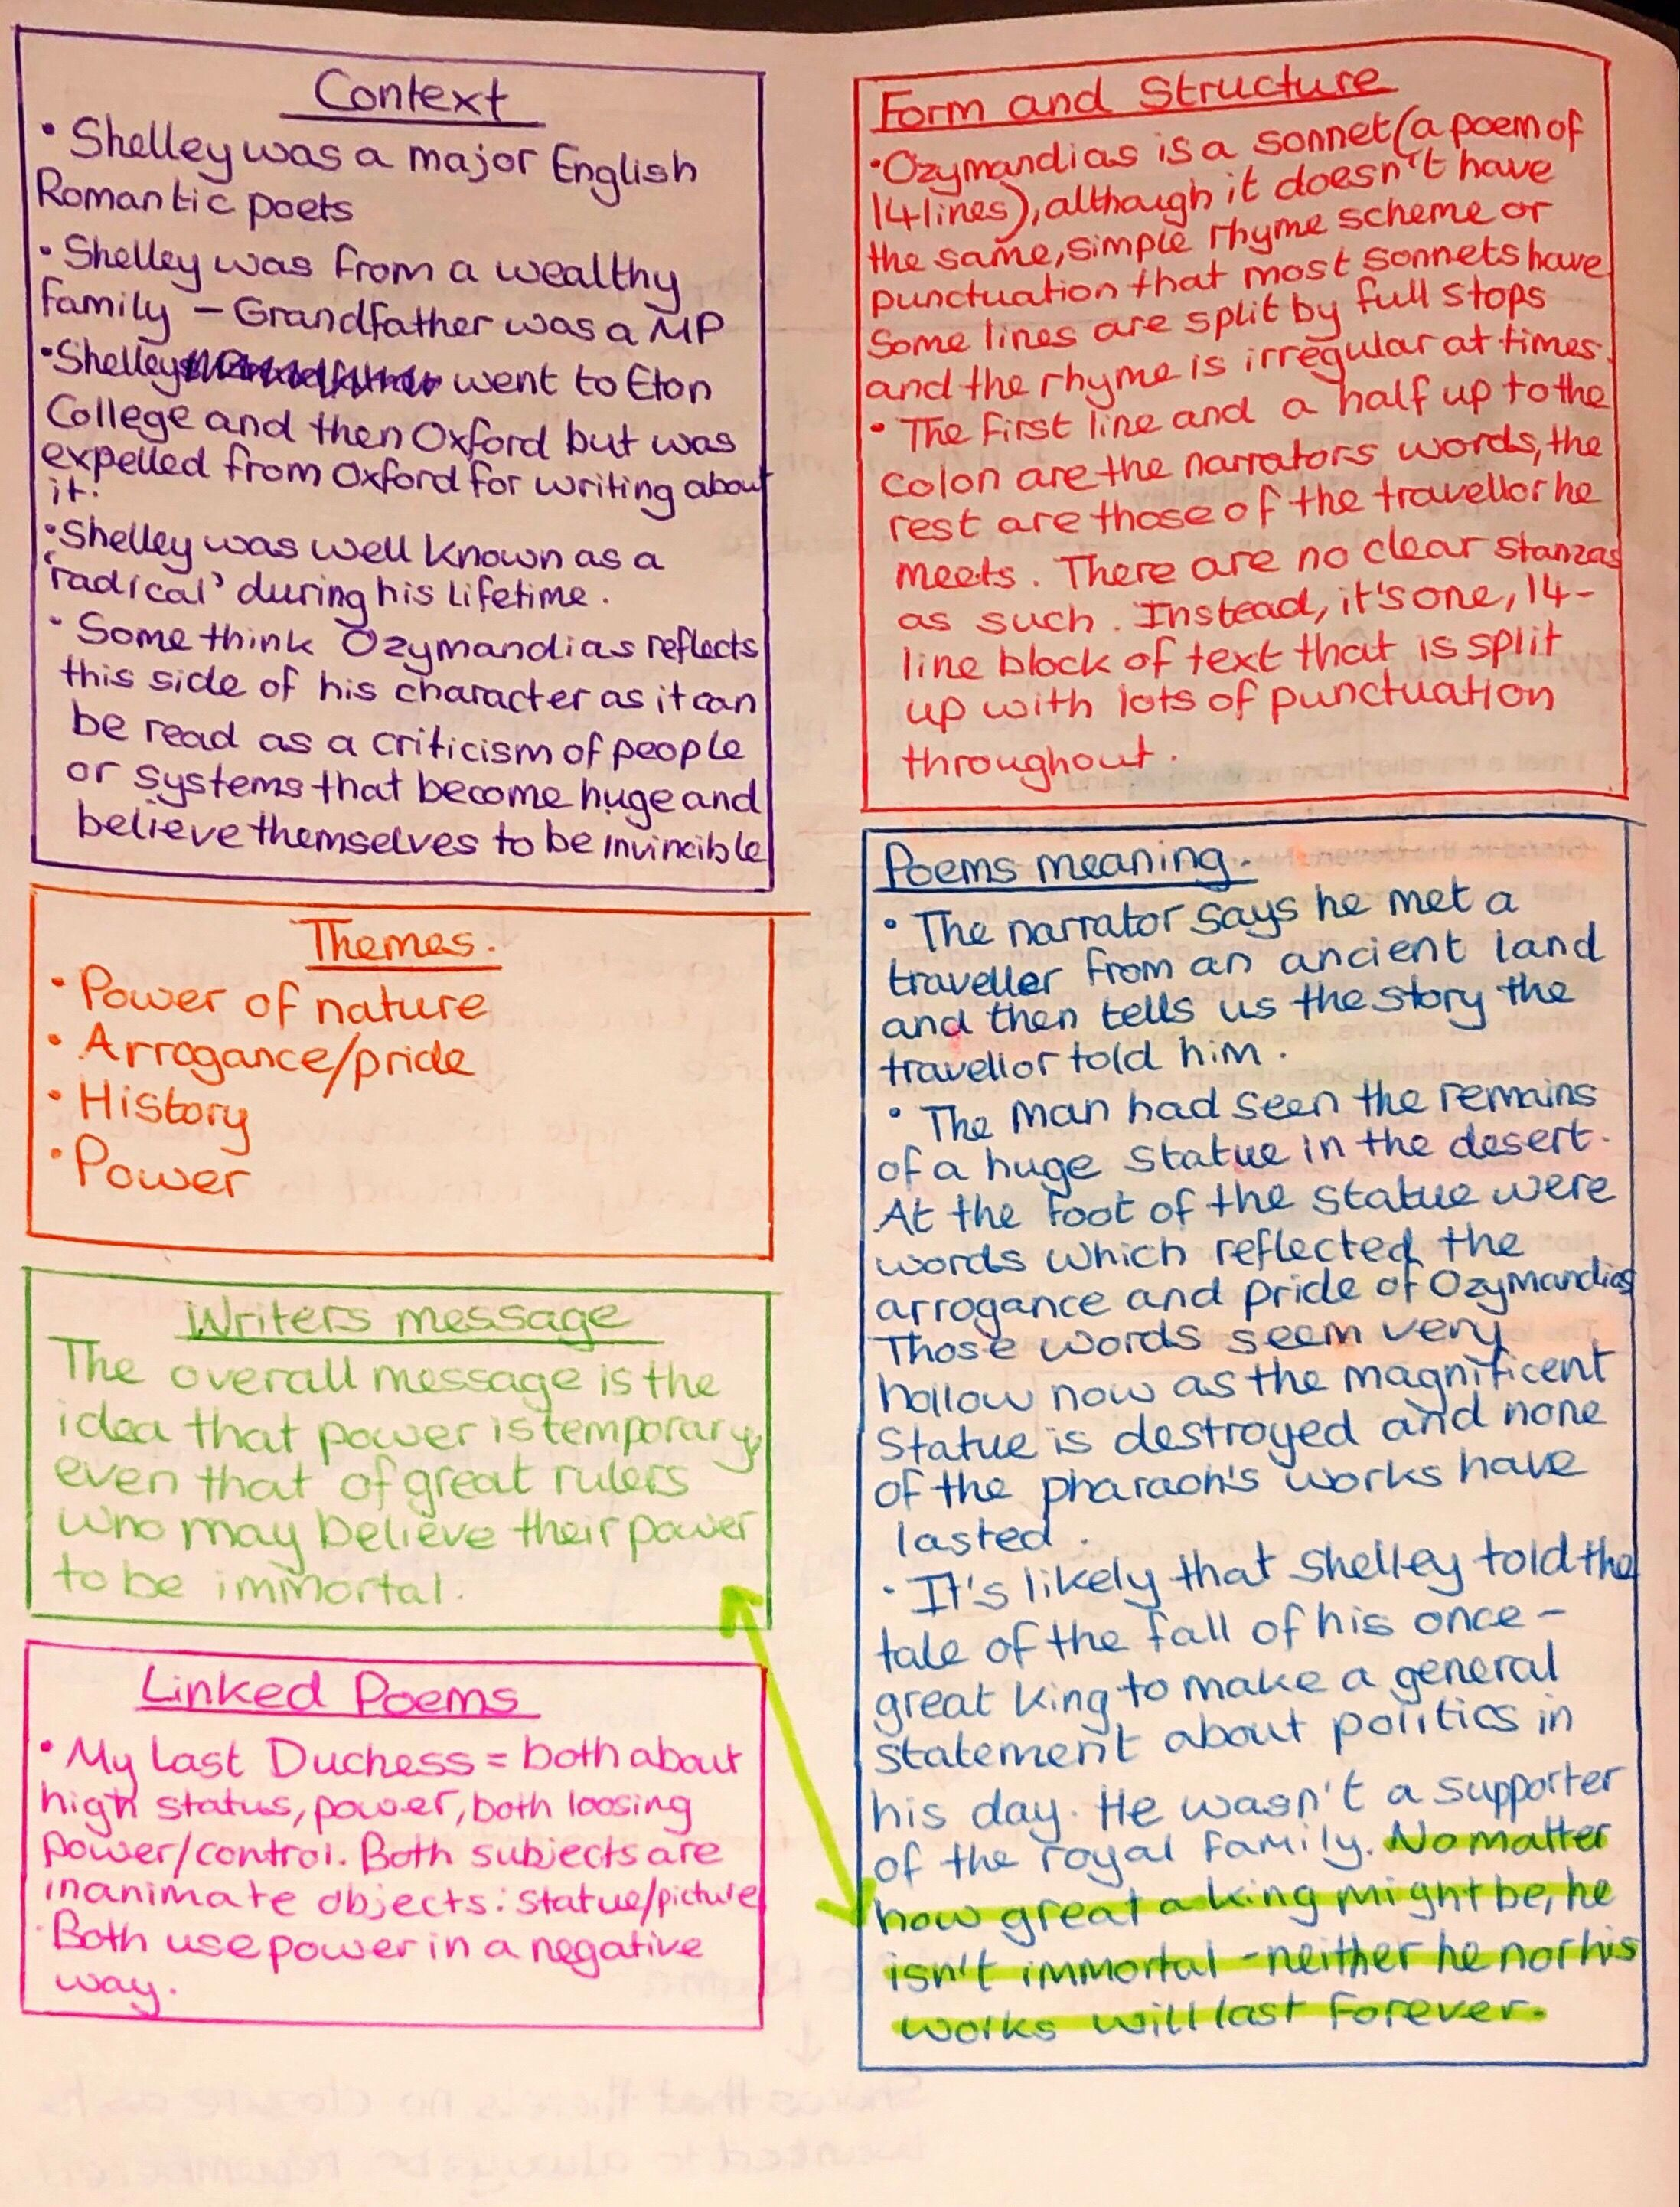 Ozymandia Revision Page Context Theme Writer Message Linked Poem Form And Structure Meanin Gcse Analysi English By Percy Bysshe Shelley Analysis